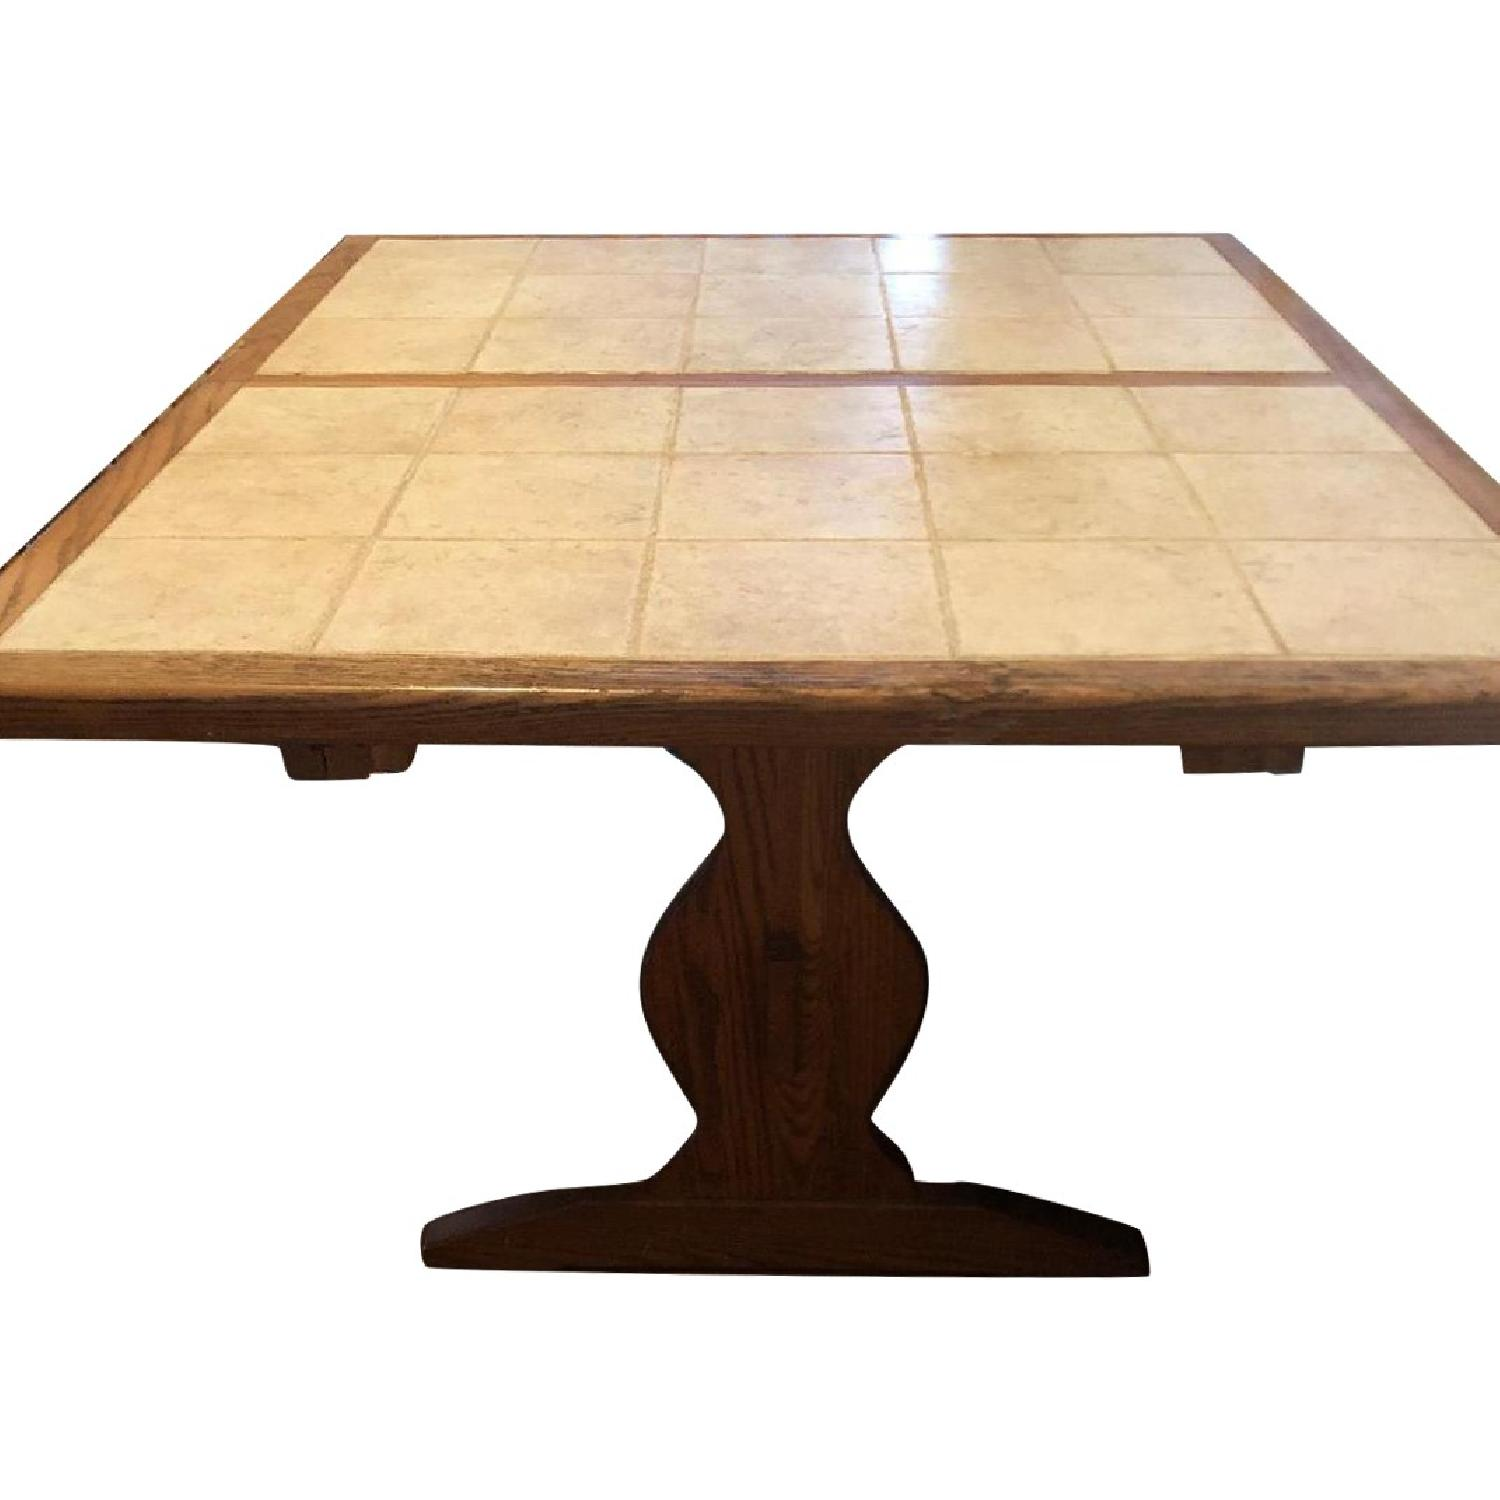 Tile Top Oak Extension Dining Table w/ 4 Chairs